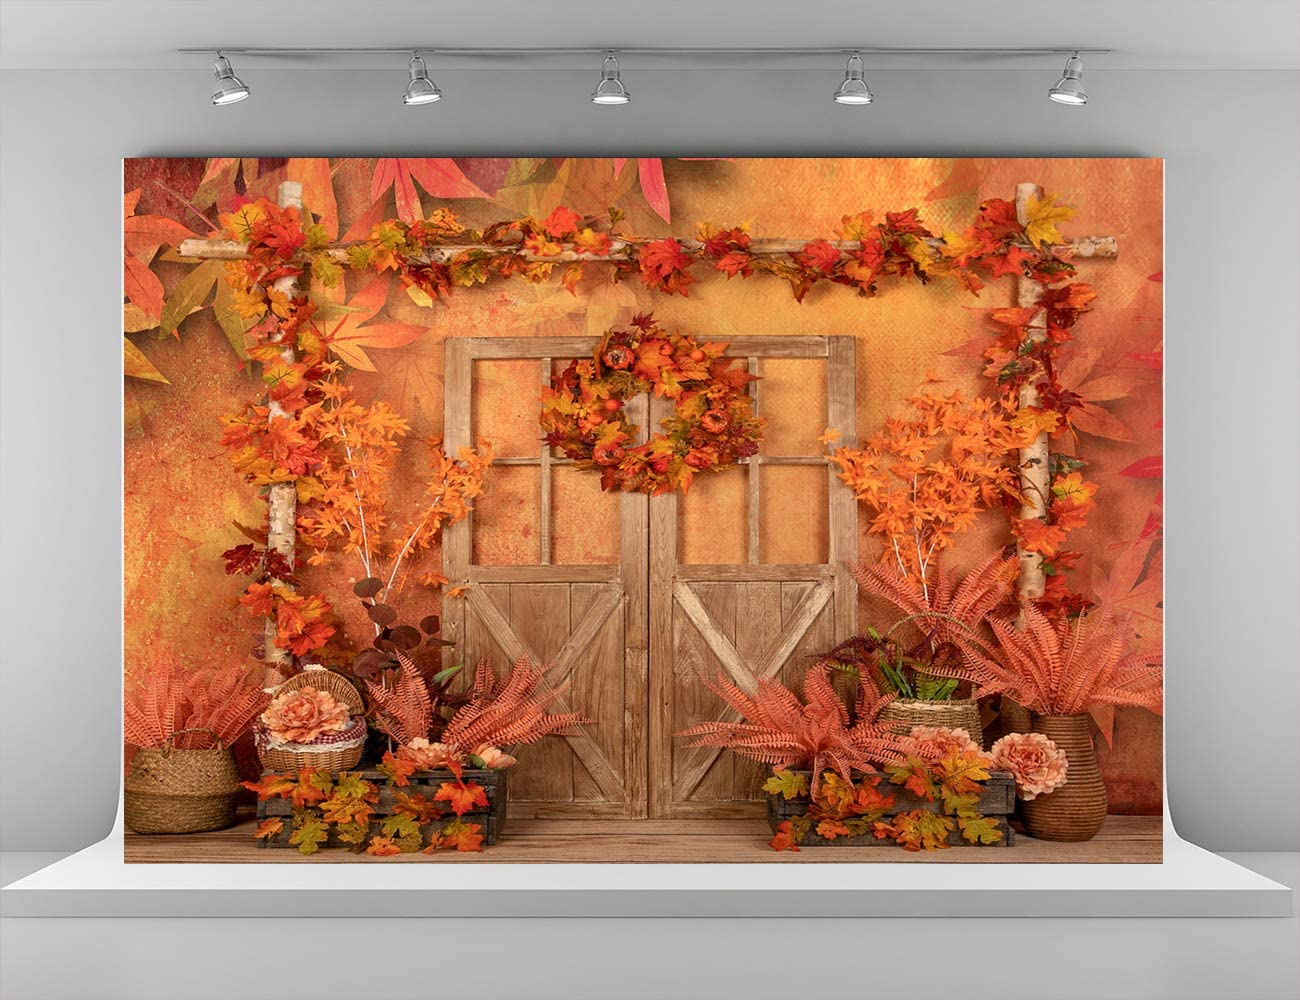 Kate 8x8ft Autumn Photography Backdrops Fall Maple Leaves Backgrounds Children Kids Photo Background Microfiber Party Decoration Backdrop for Photoshoot